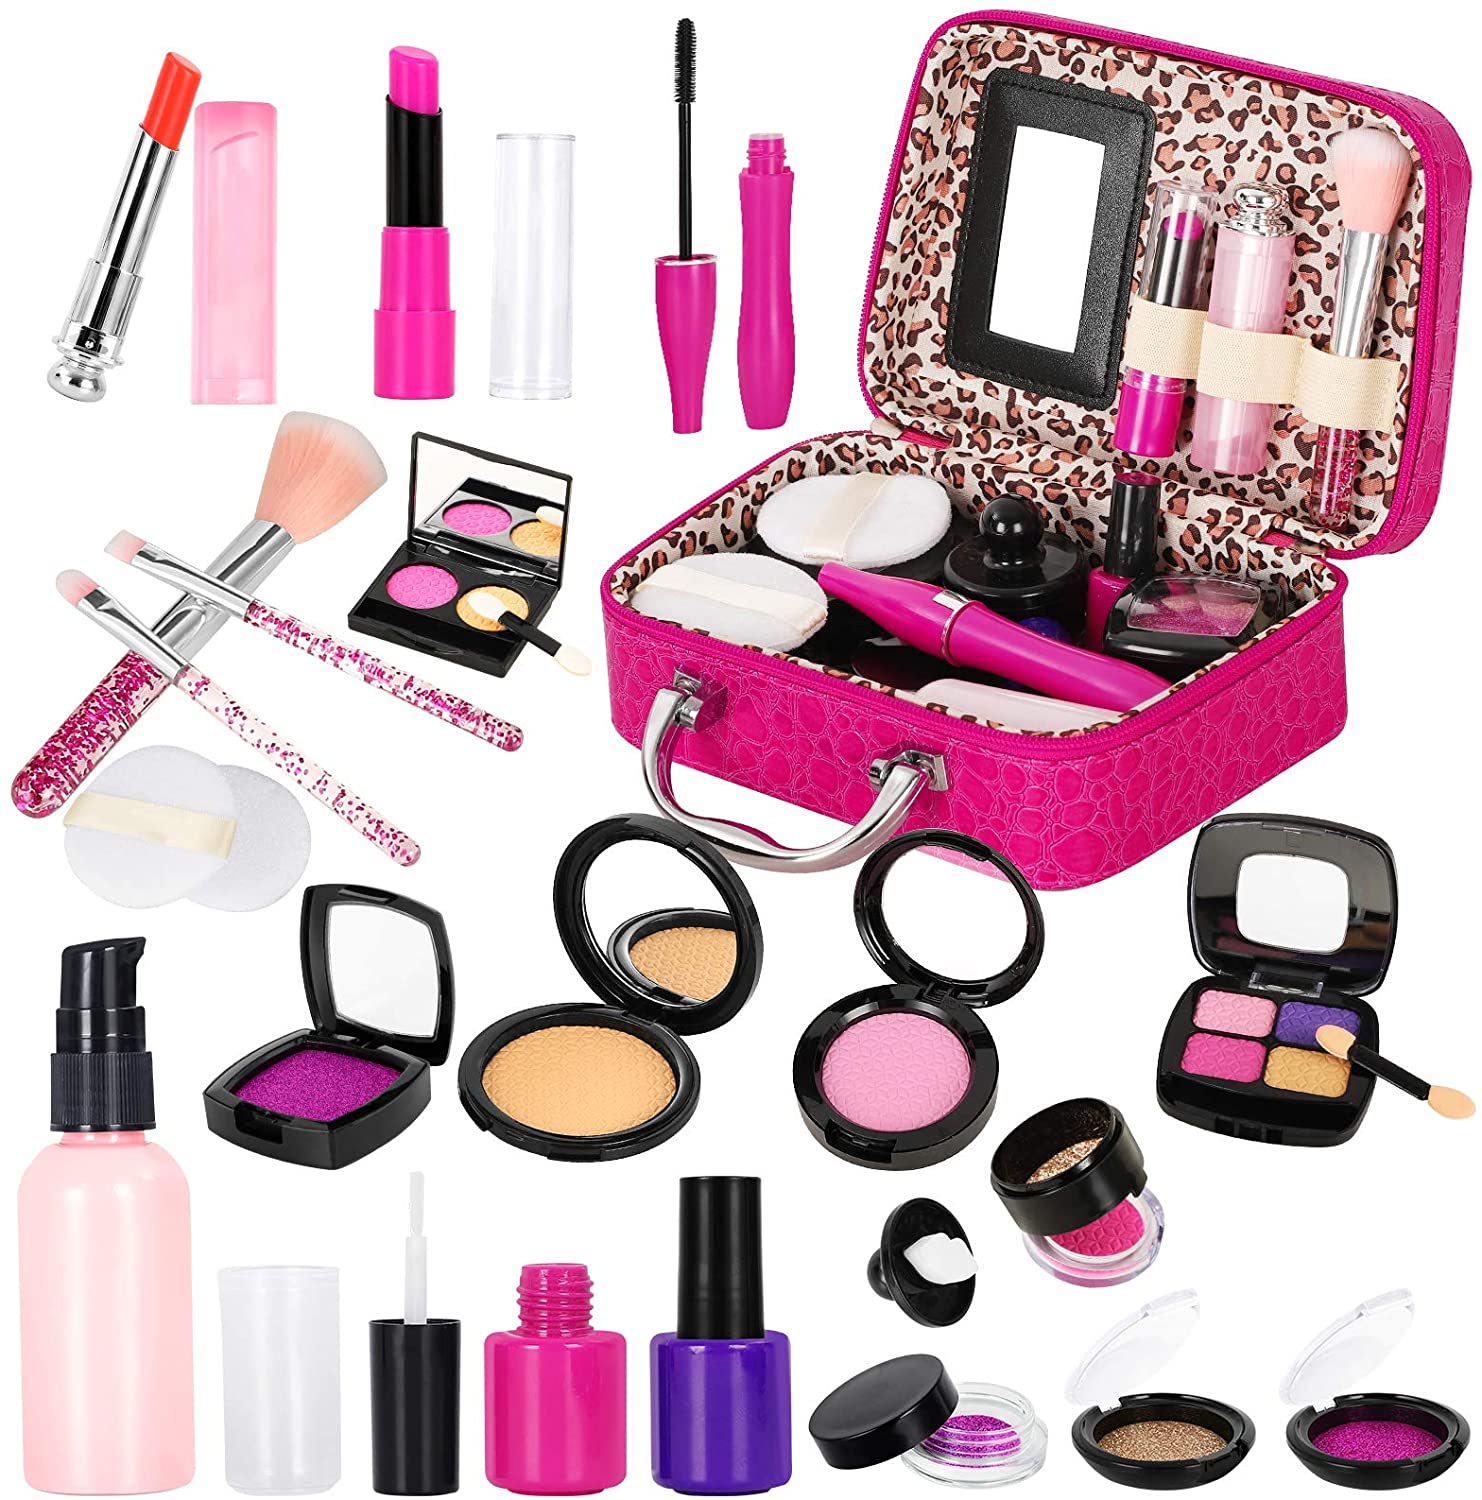 Kids Makeup Kit for Girls, Pretend Play Makeup Sets with Cosmetic Bag for Little Girls Birthday Safety Tested- Non Toxic